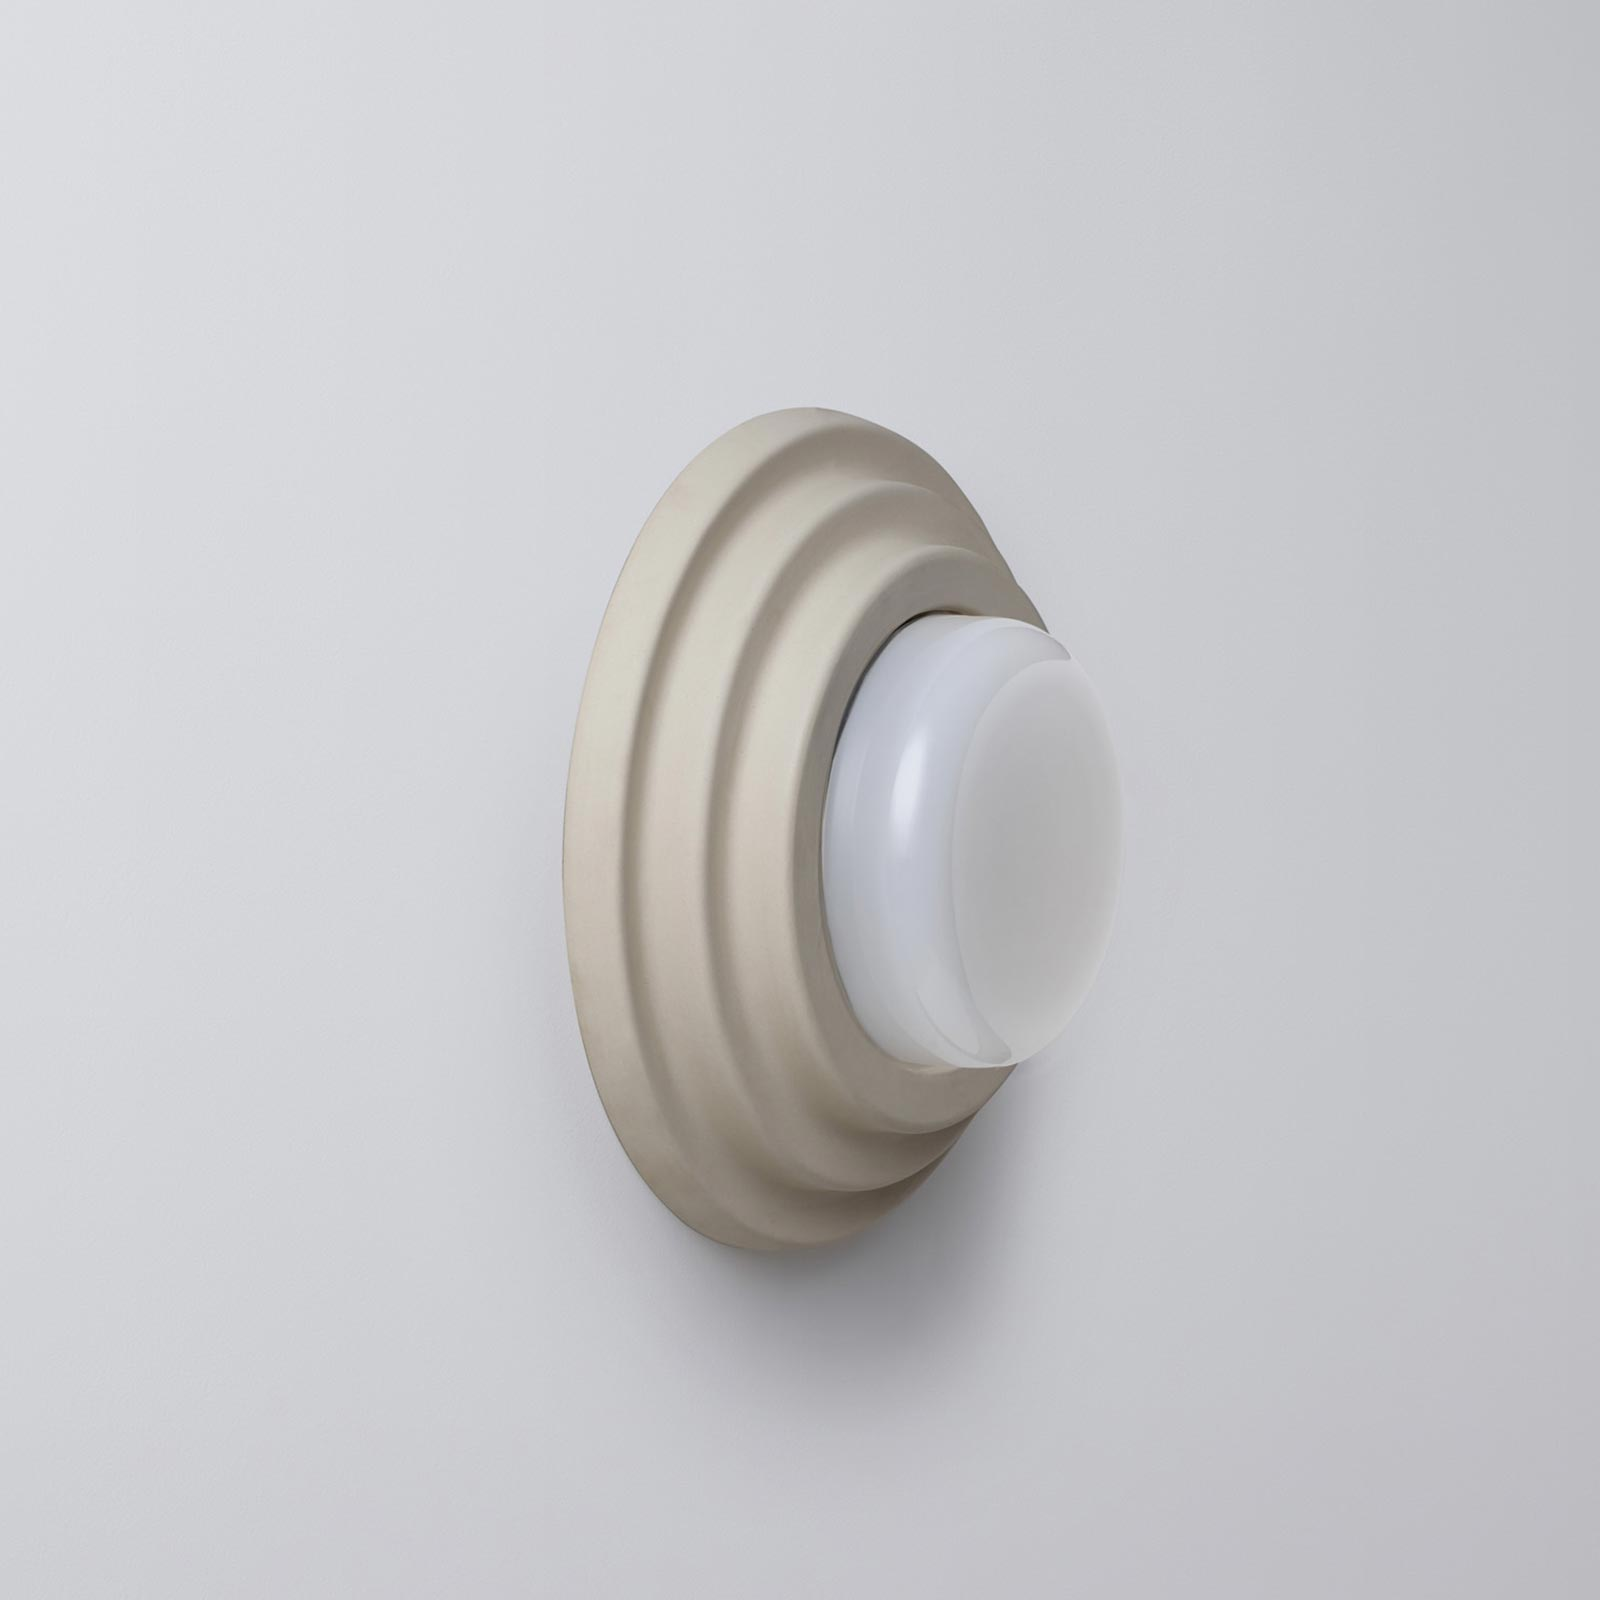 Honey Wall Sconce By Coco Flip Hero 3